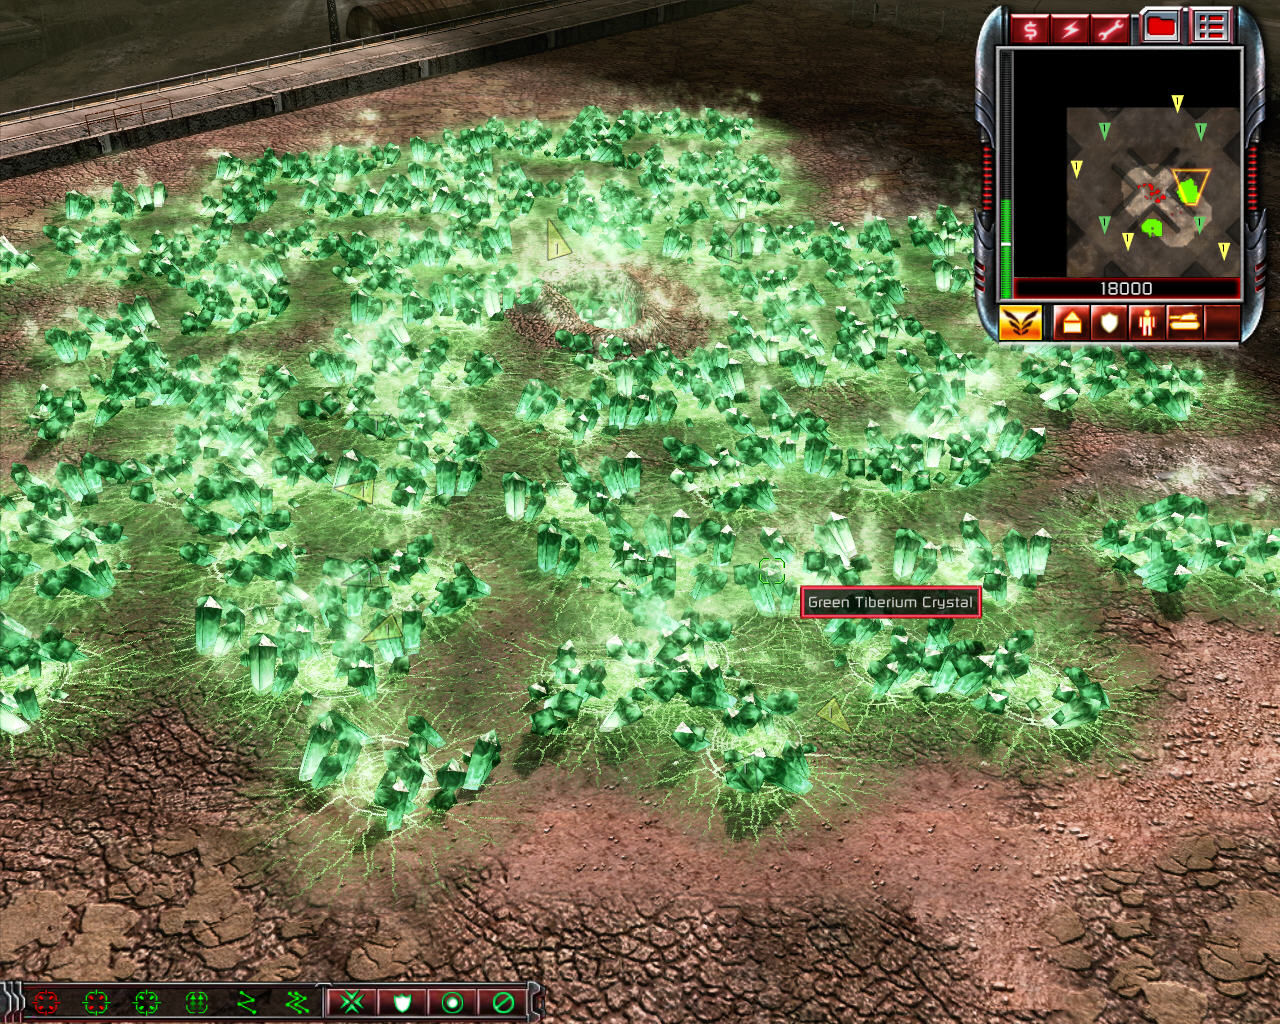 Command & Conquer 3: Kane's Wrath Windows Green tiberium crystals